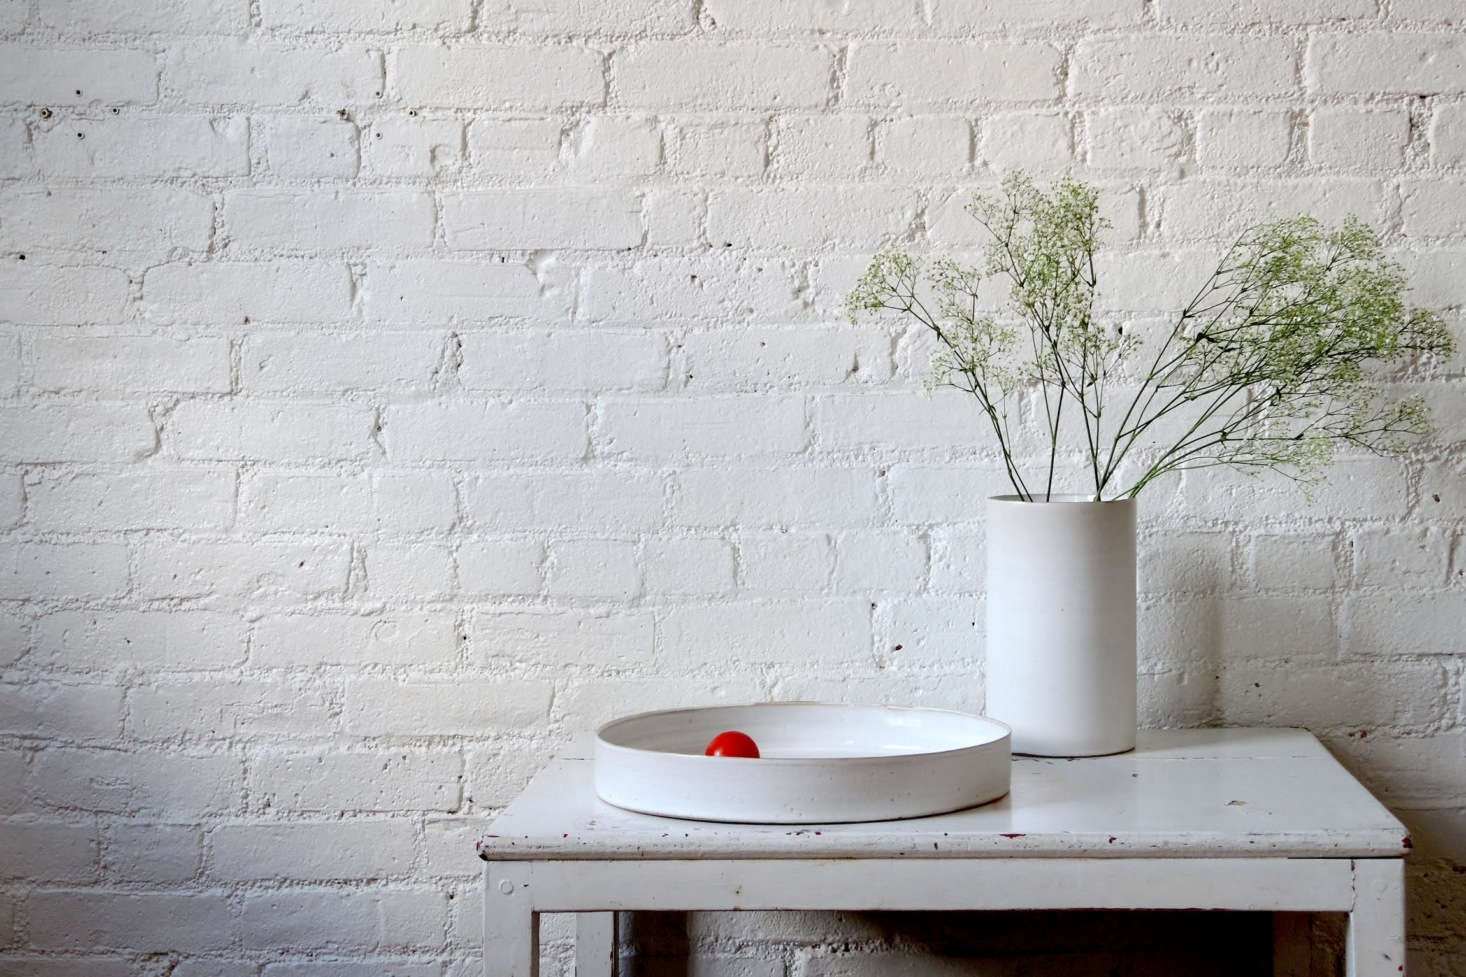 We've admired Tracie Hervy's delicate, perfectly proportioned ceramic pieces for a while now; but we hadn't seen her work in person until this fall's Field + Supply in Kingston, NY (it was worth the wait). We especially like her Shallow White Stoneware Tray, which is $88 from new online shop Bloomist.